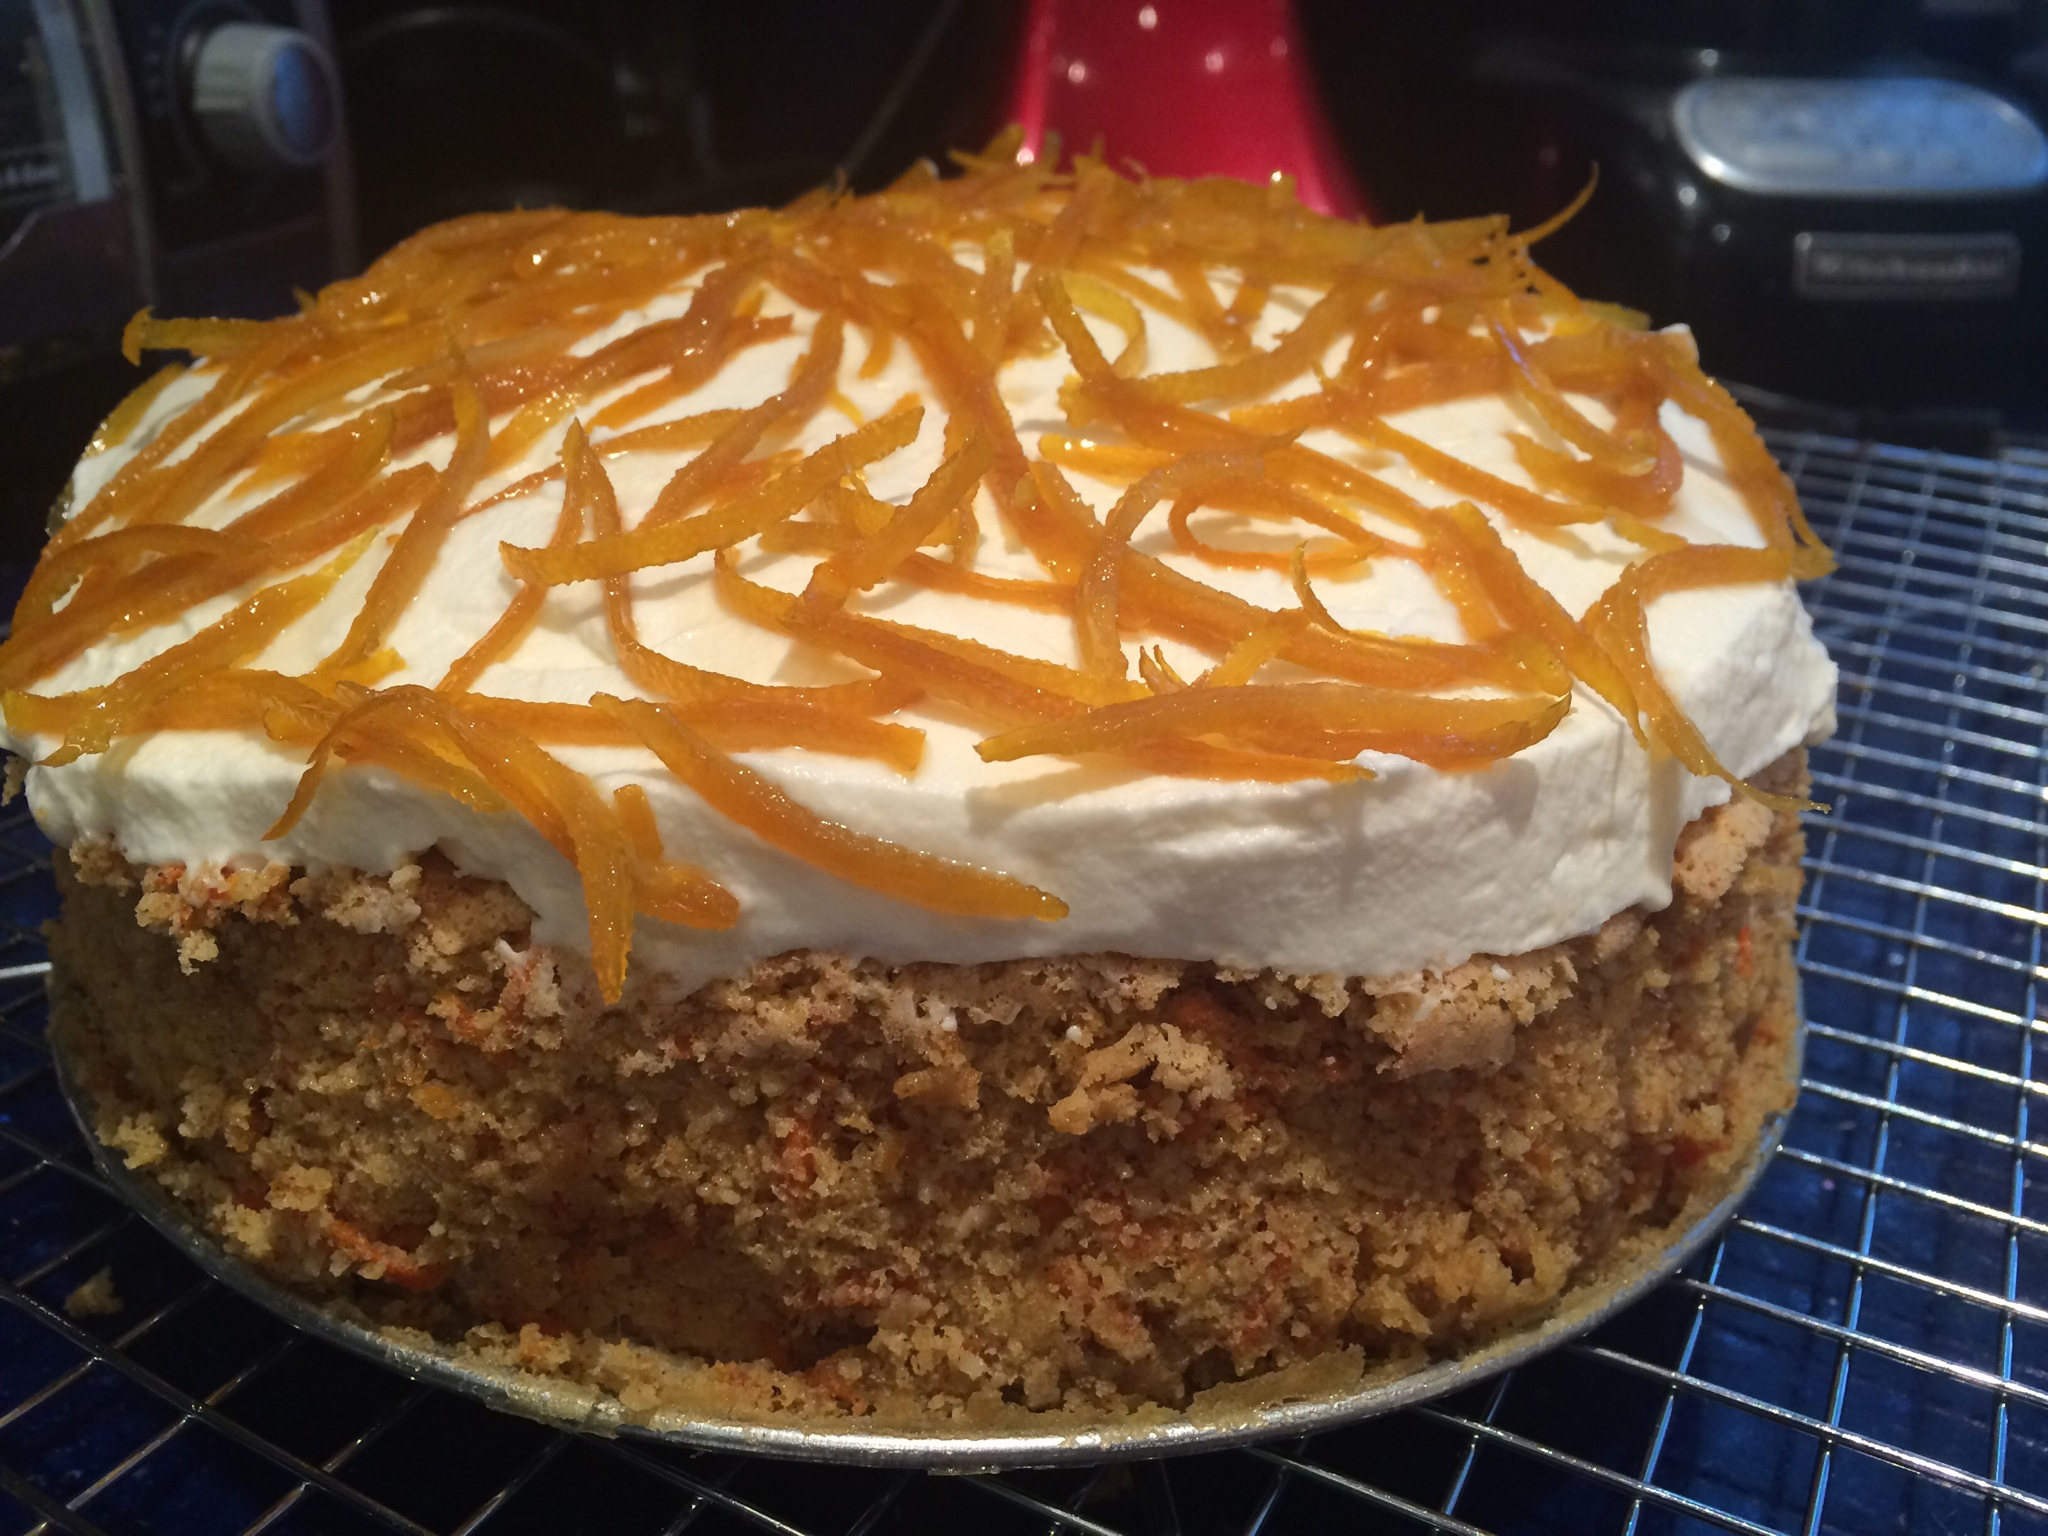 ... frosting recipe mccormick carrot cake with maple mascarpone icing blue